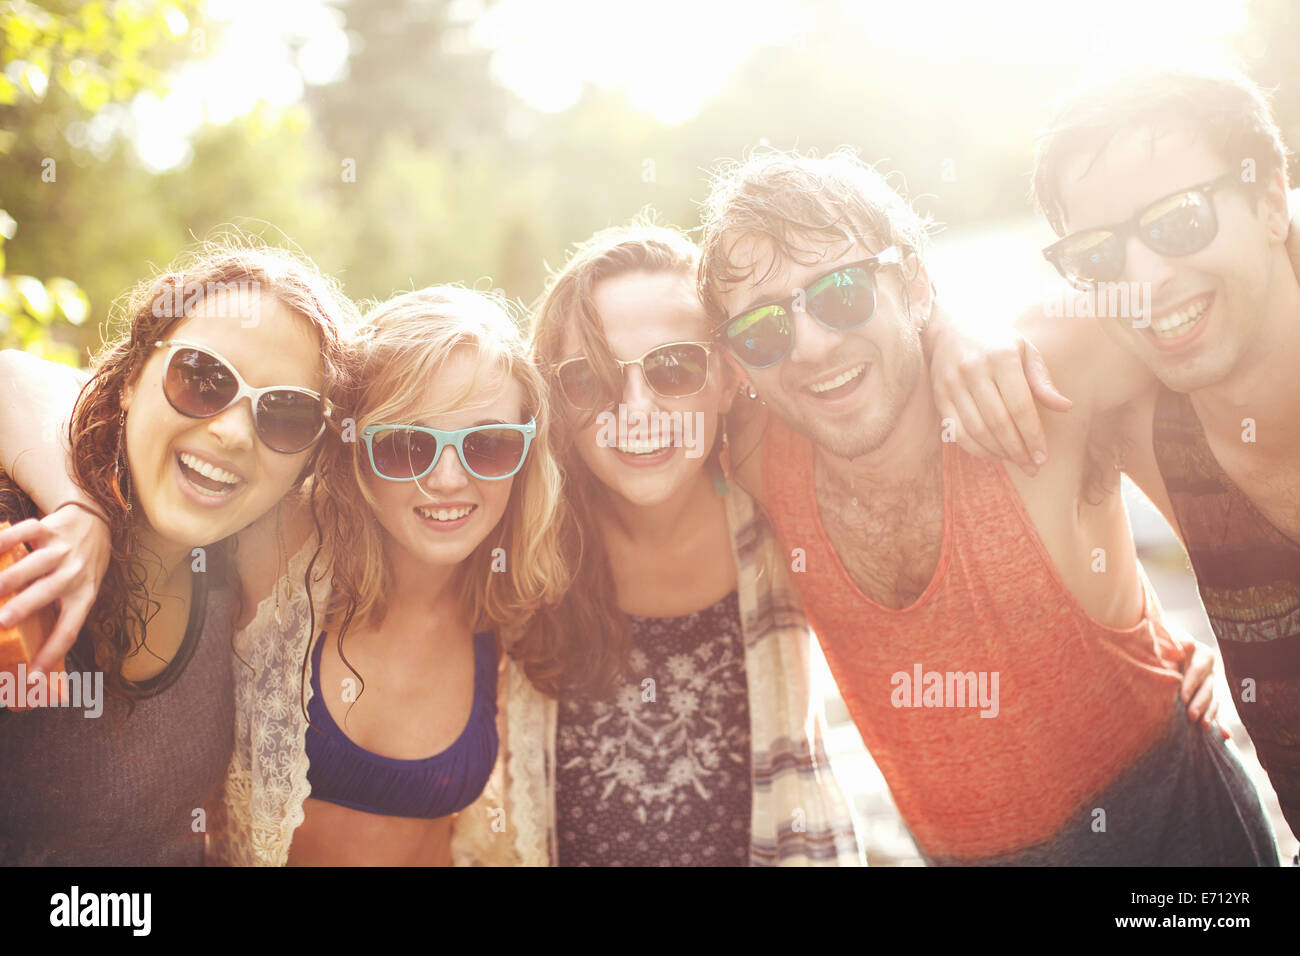 Five friends with arms around each other, portrait - Stock Image